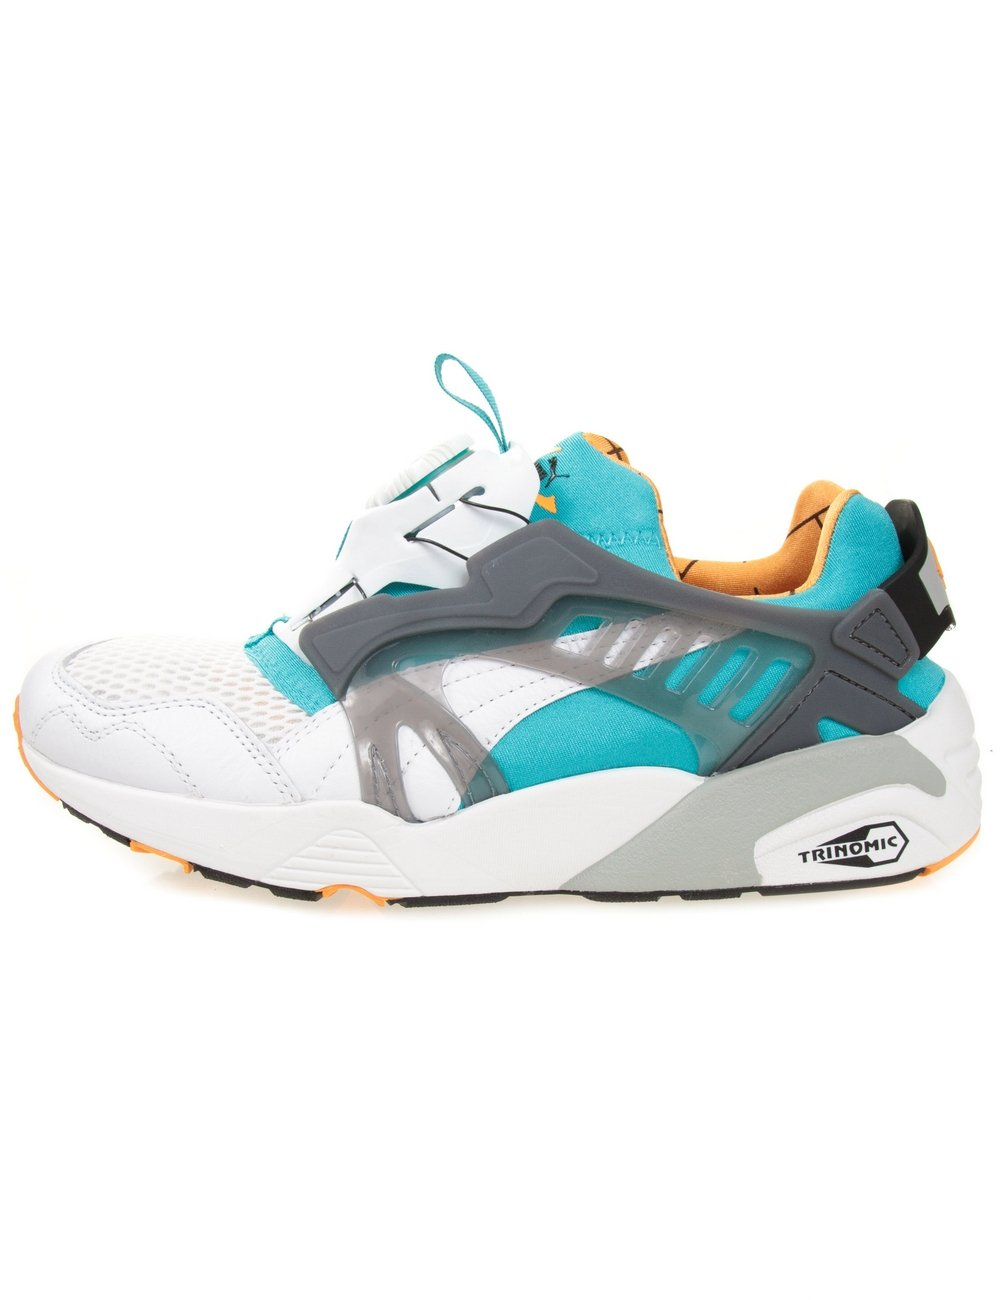 puma disc blaze trinomic og 93 hawaiian ocean trainers. Black Bedroom Furniture Sets. Home Design Ideas